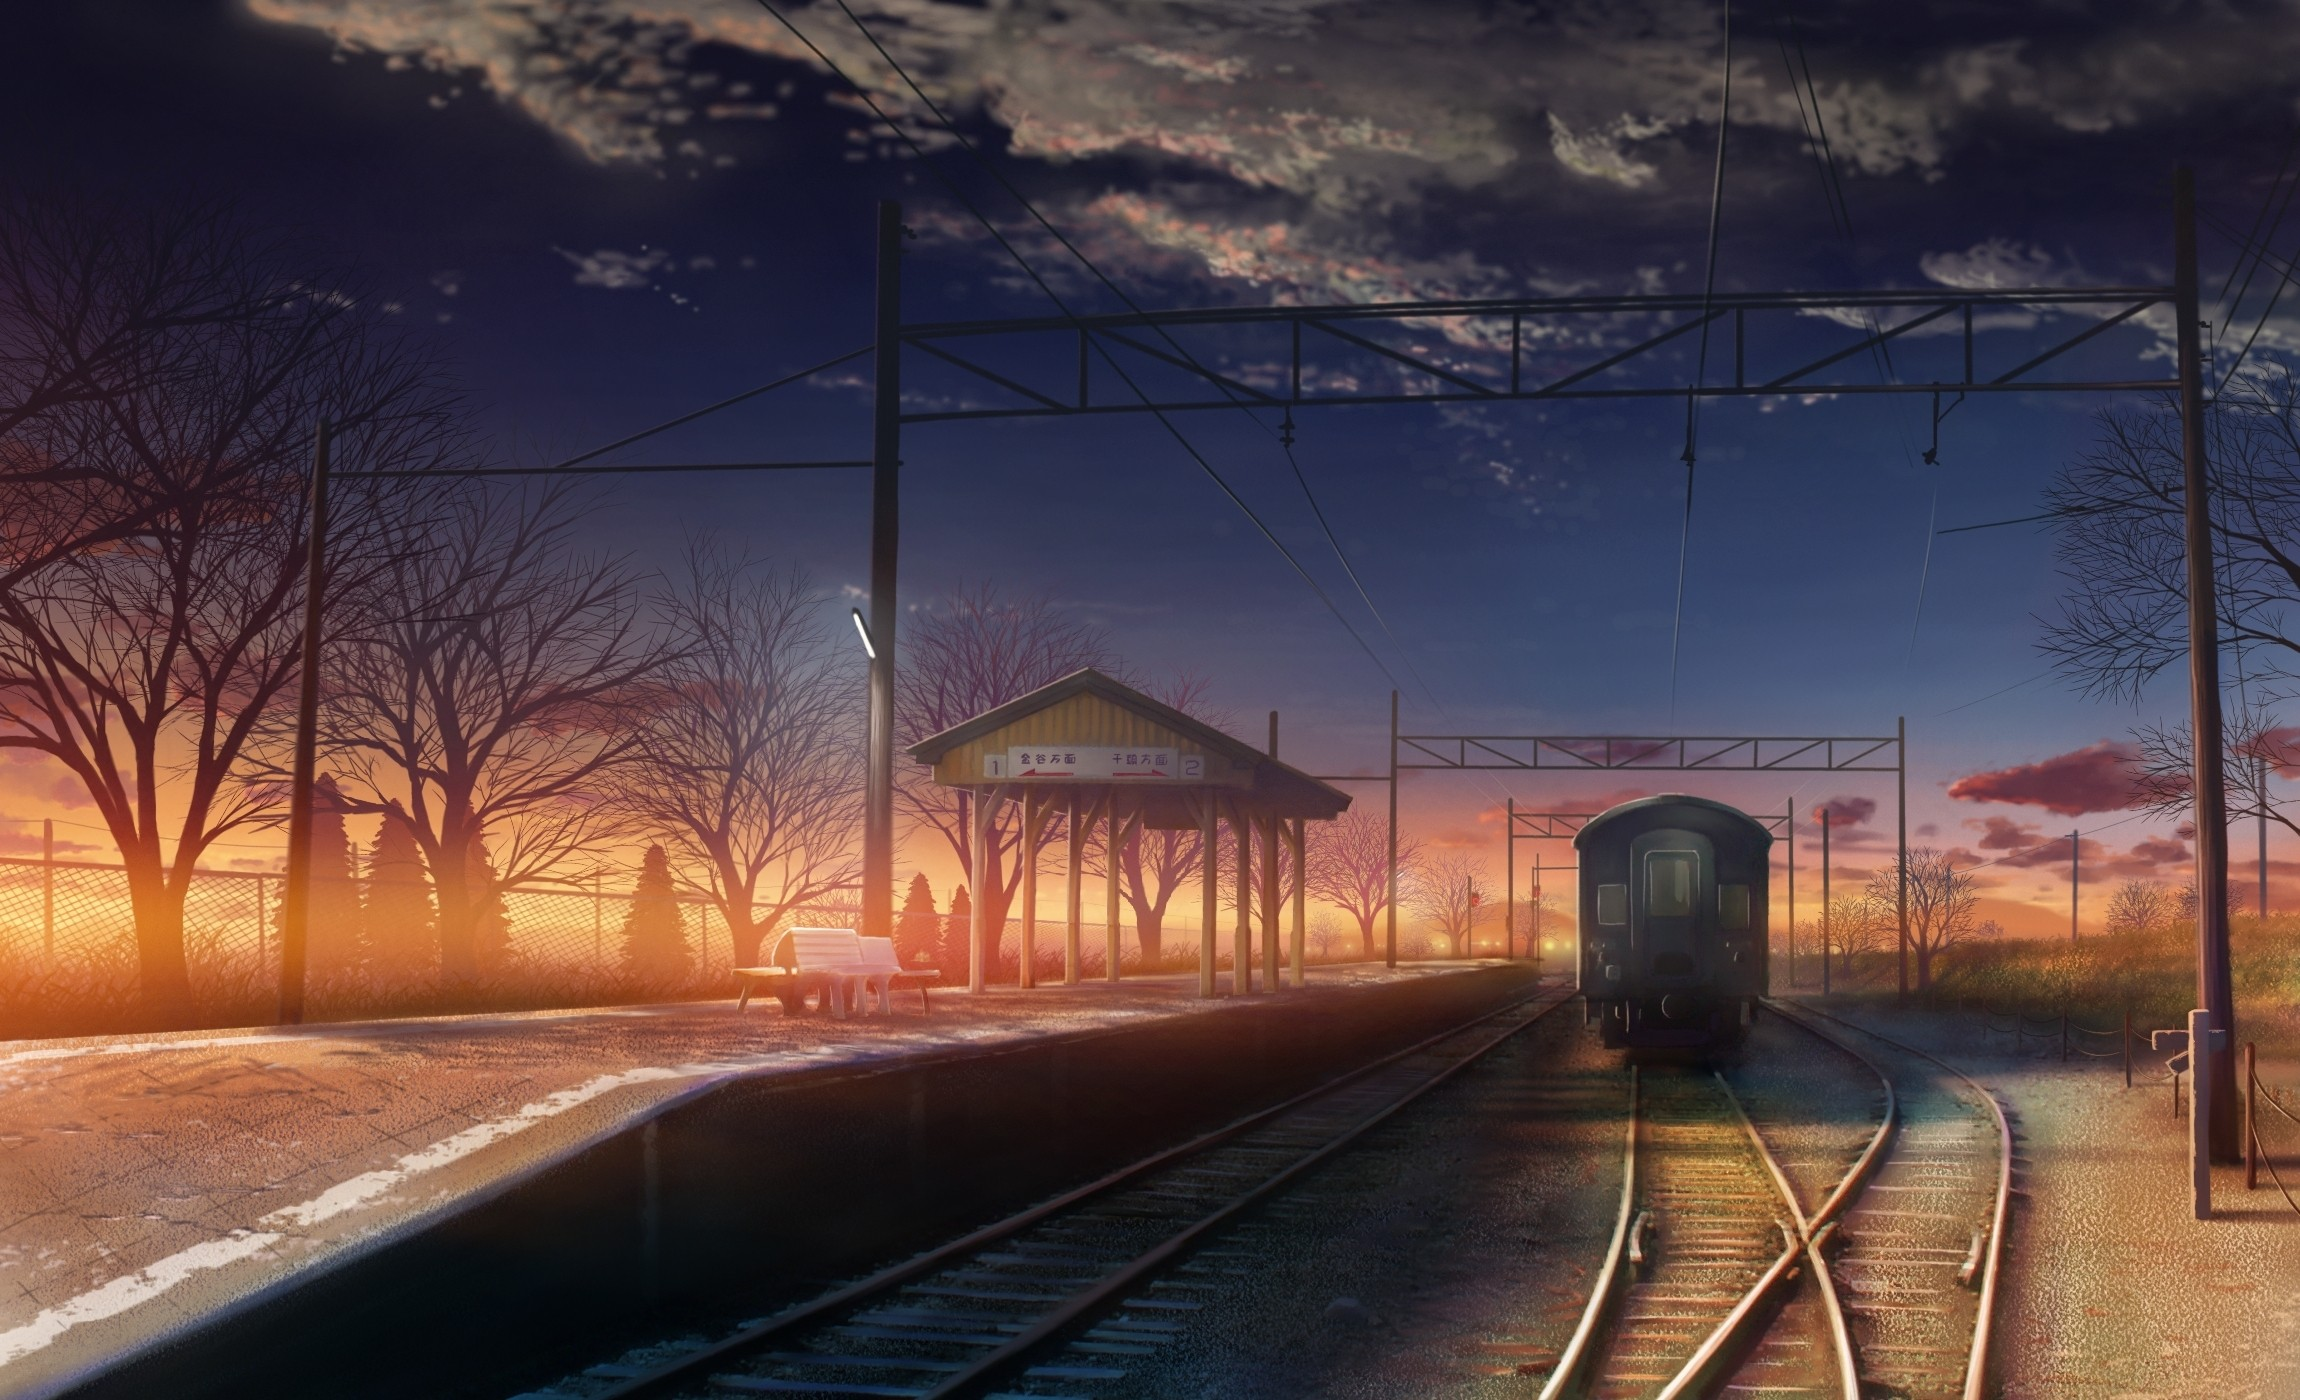 Train Wallpaper 7819 2300x1400 px HDWallSourcecom